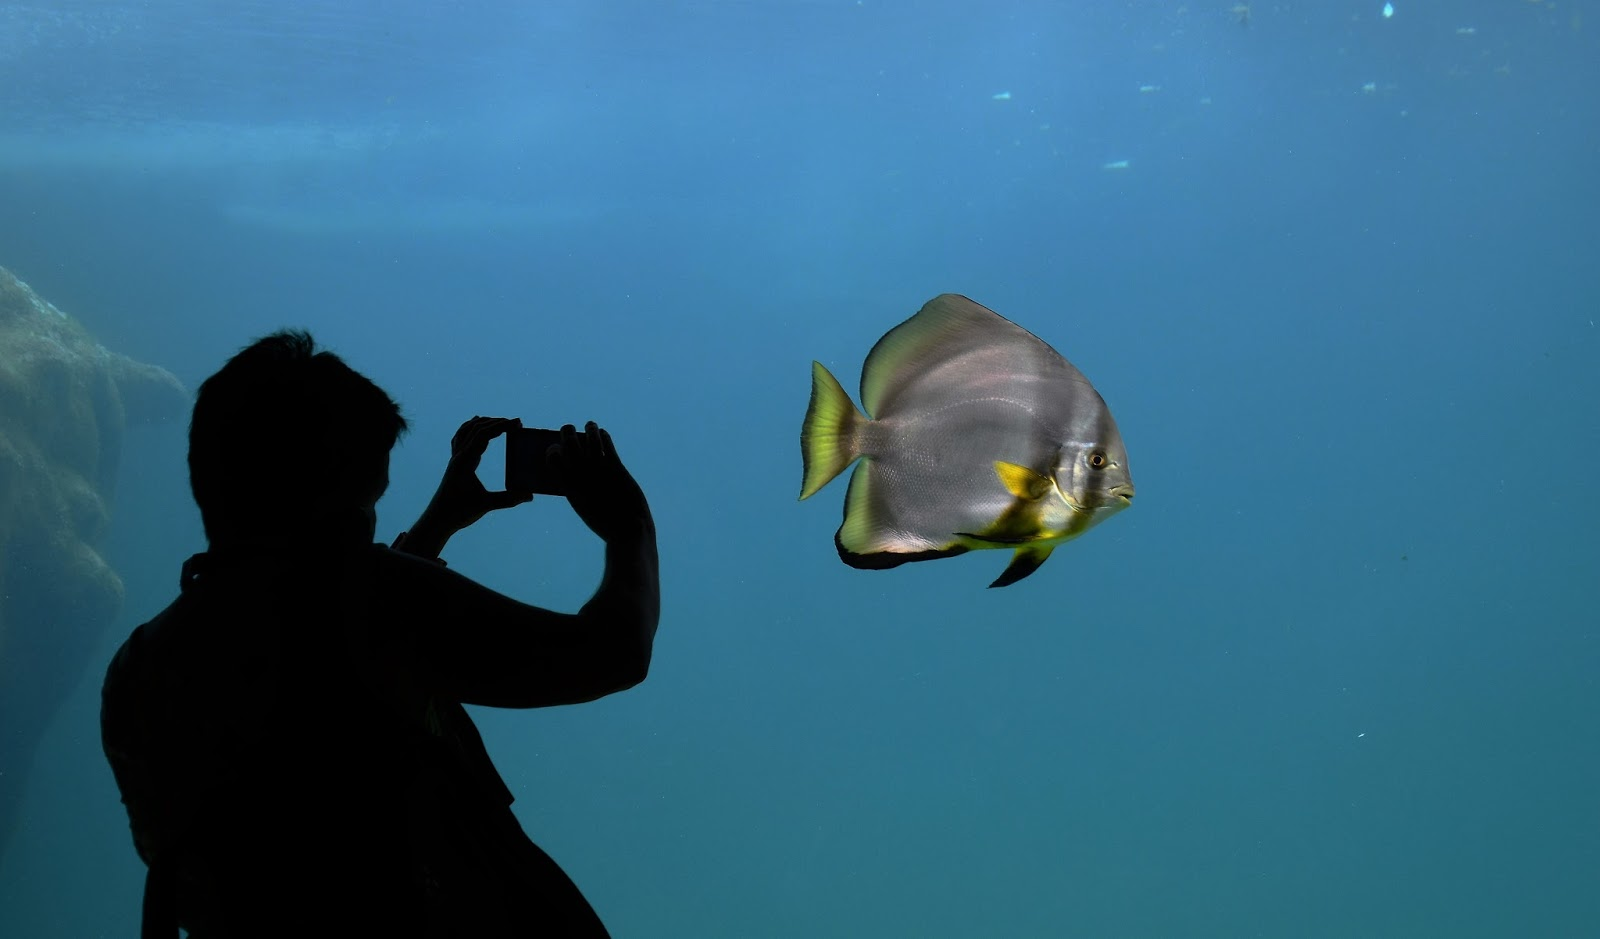 A man taking a photo of a fish in an aquarium.